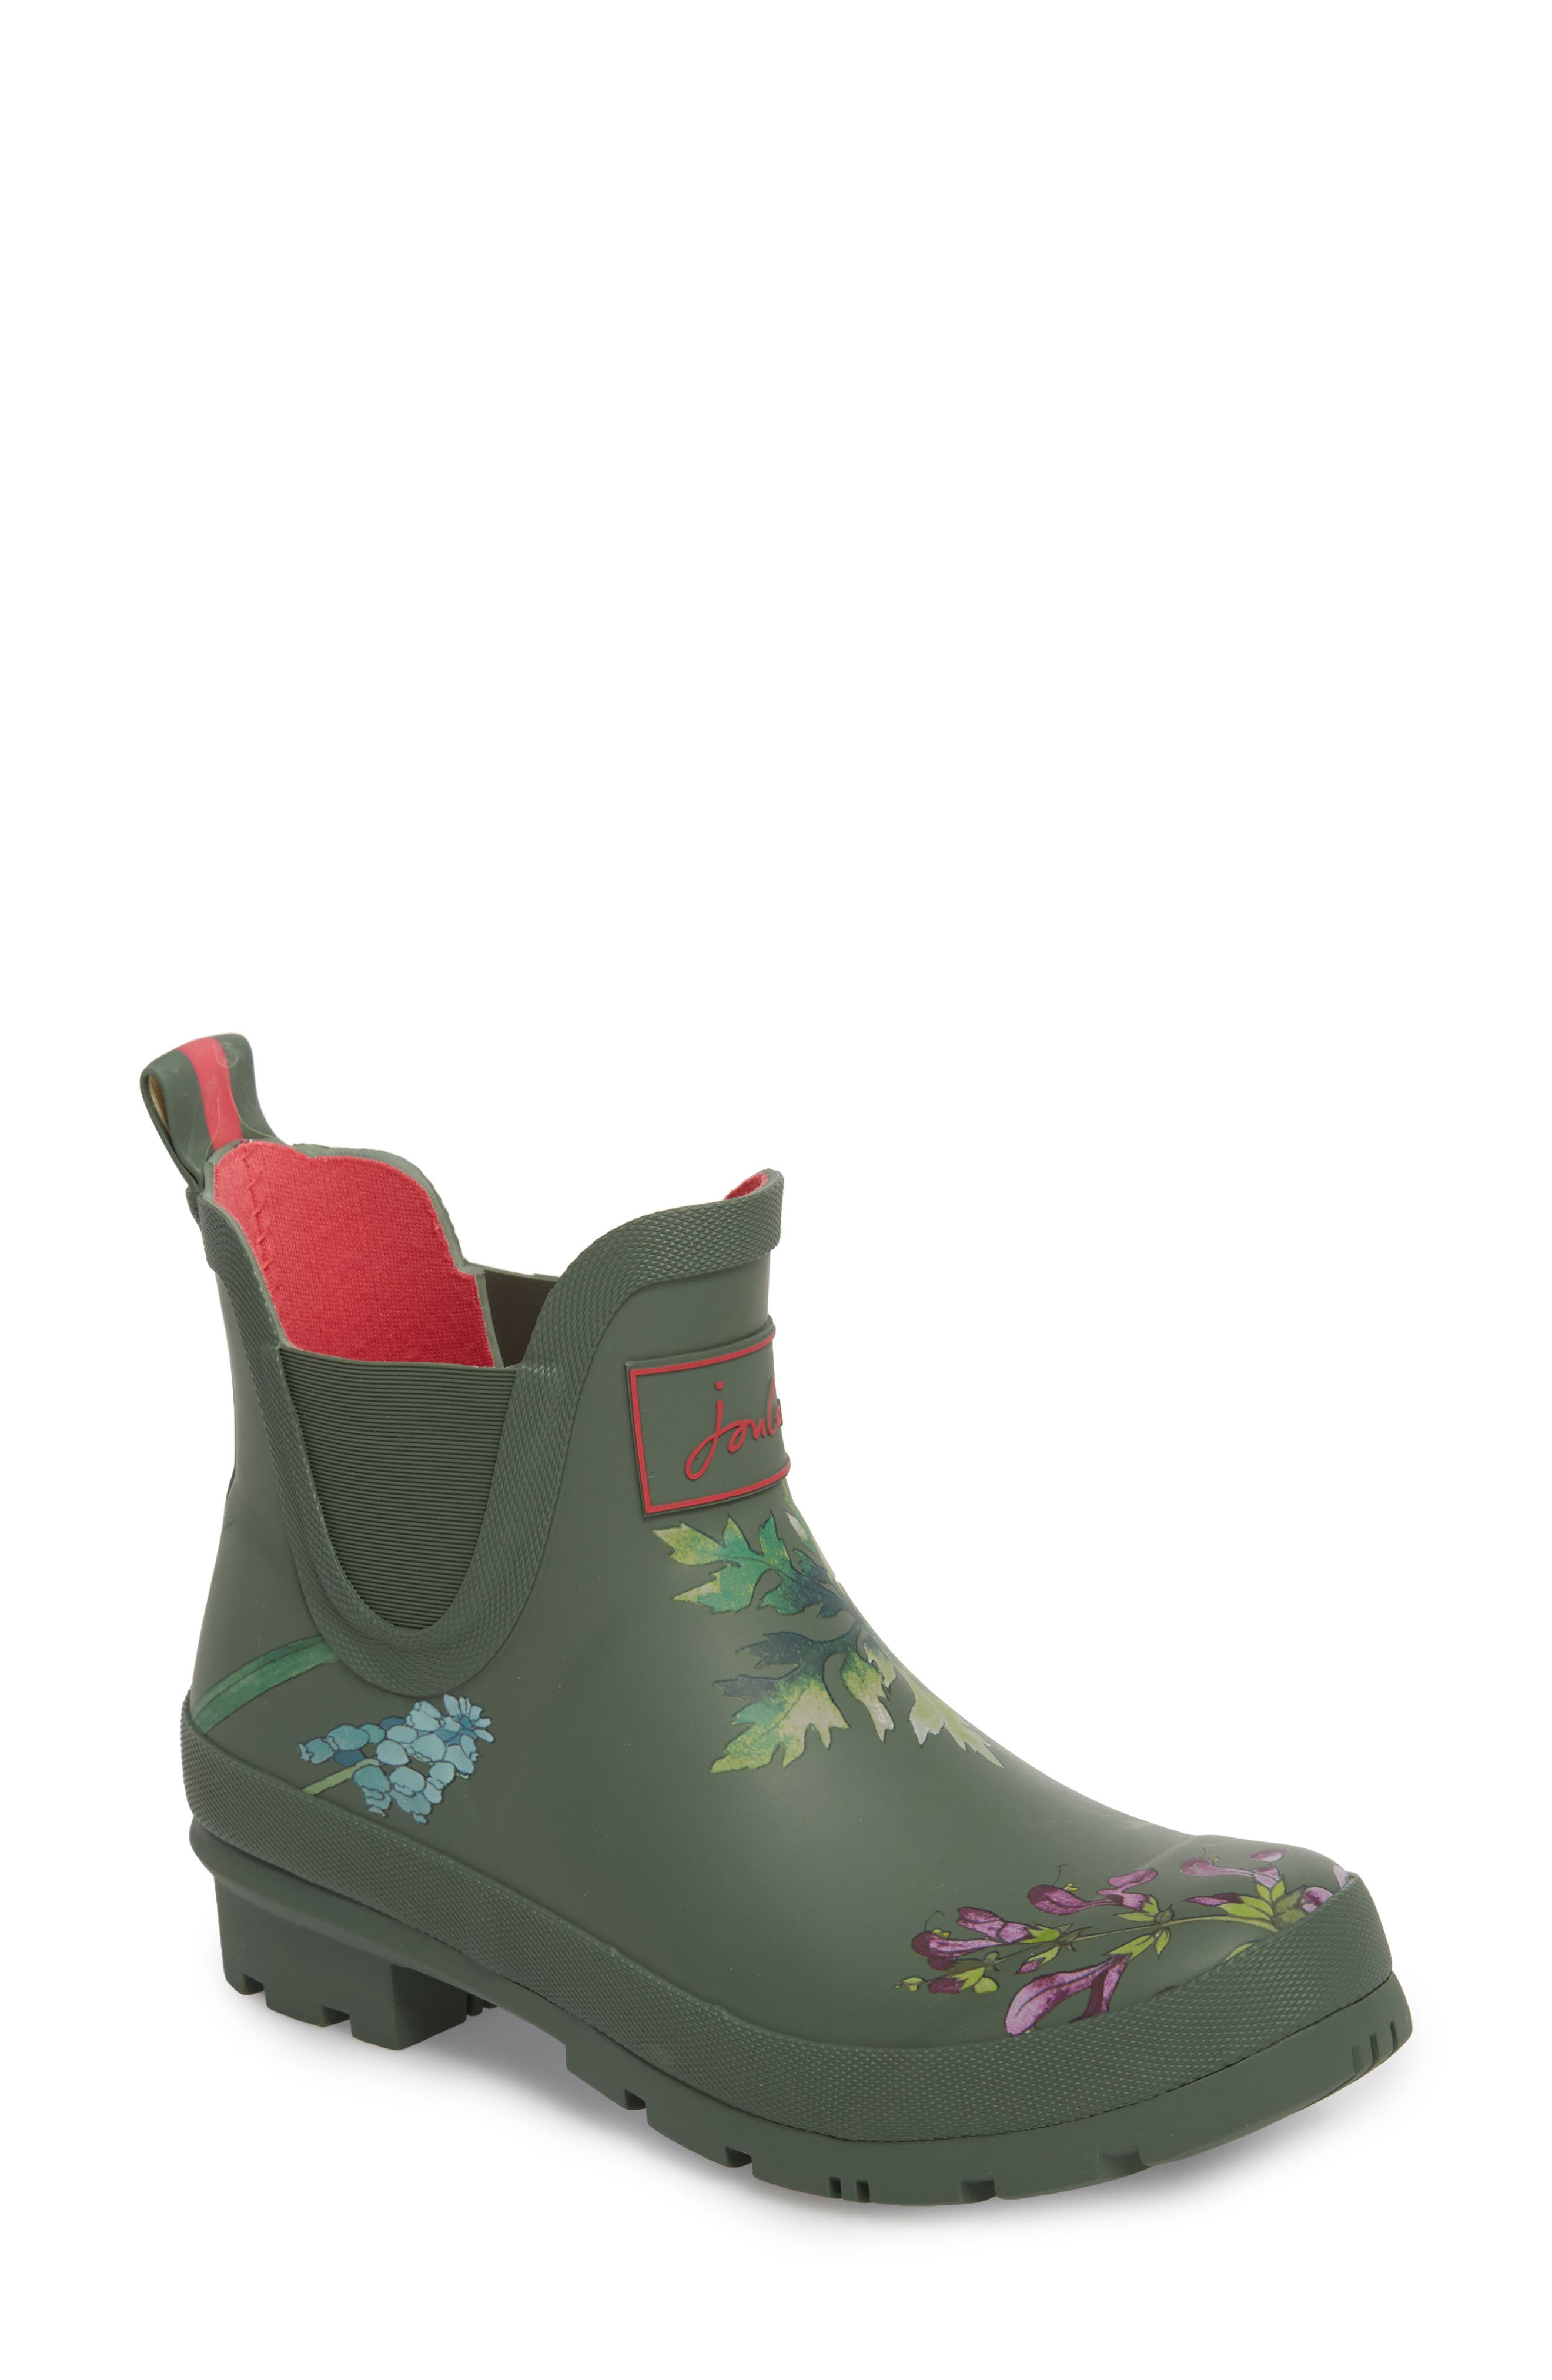 'Wellibob' Short Rain Boot,                         Main,                         color, Laurel Botanical